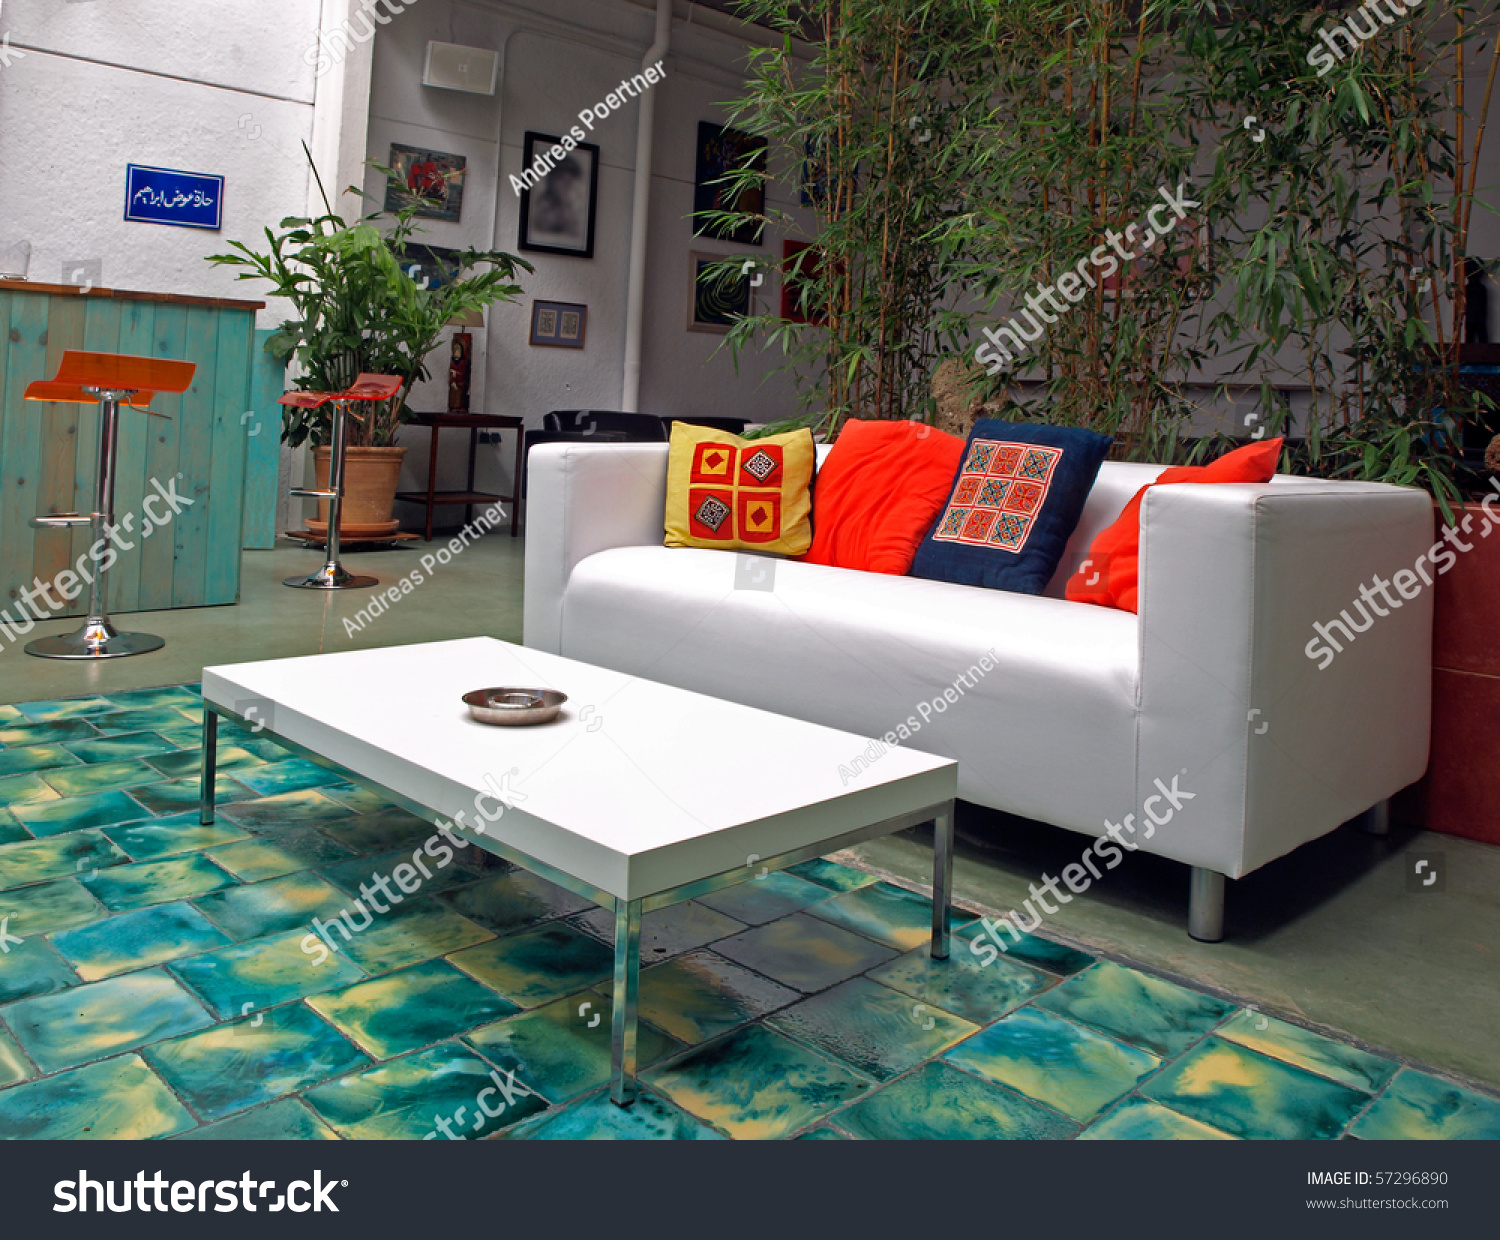 Sofa couch in a chill out bat stock photo 57296890 - Chill out sofa ...